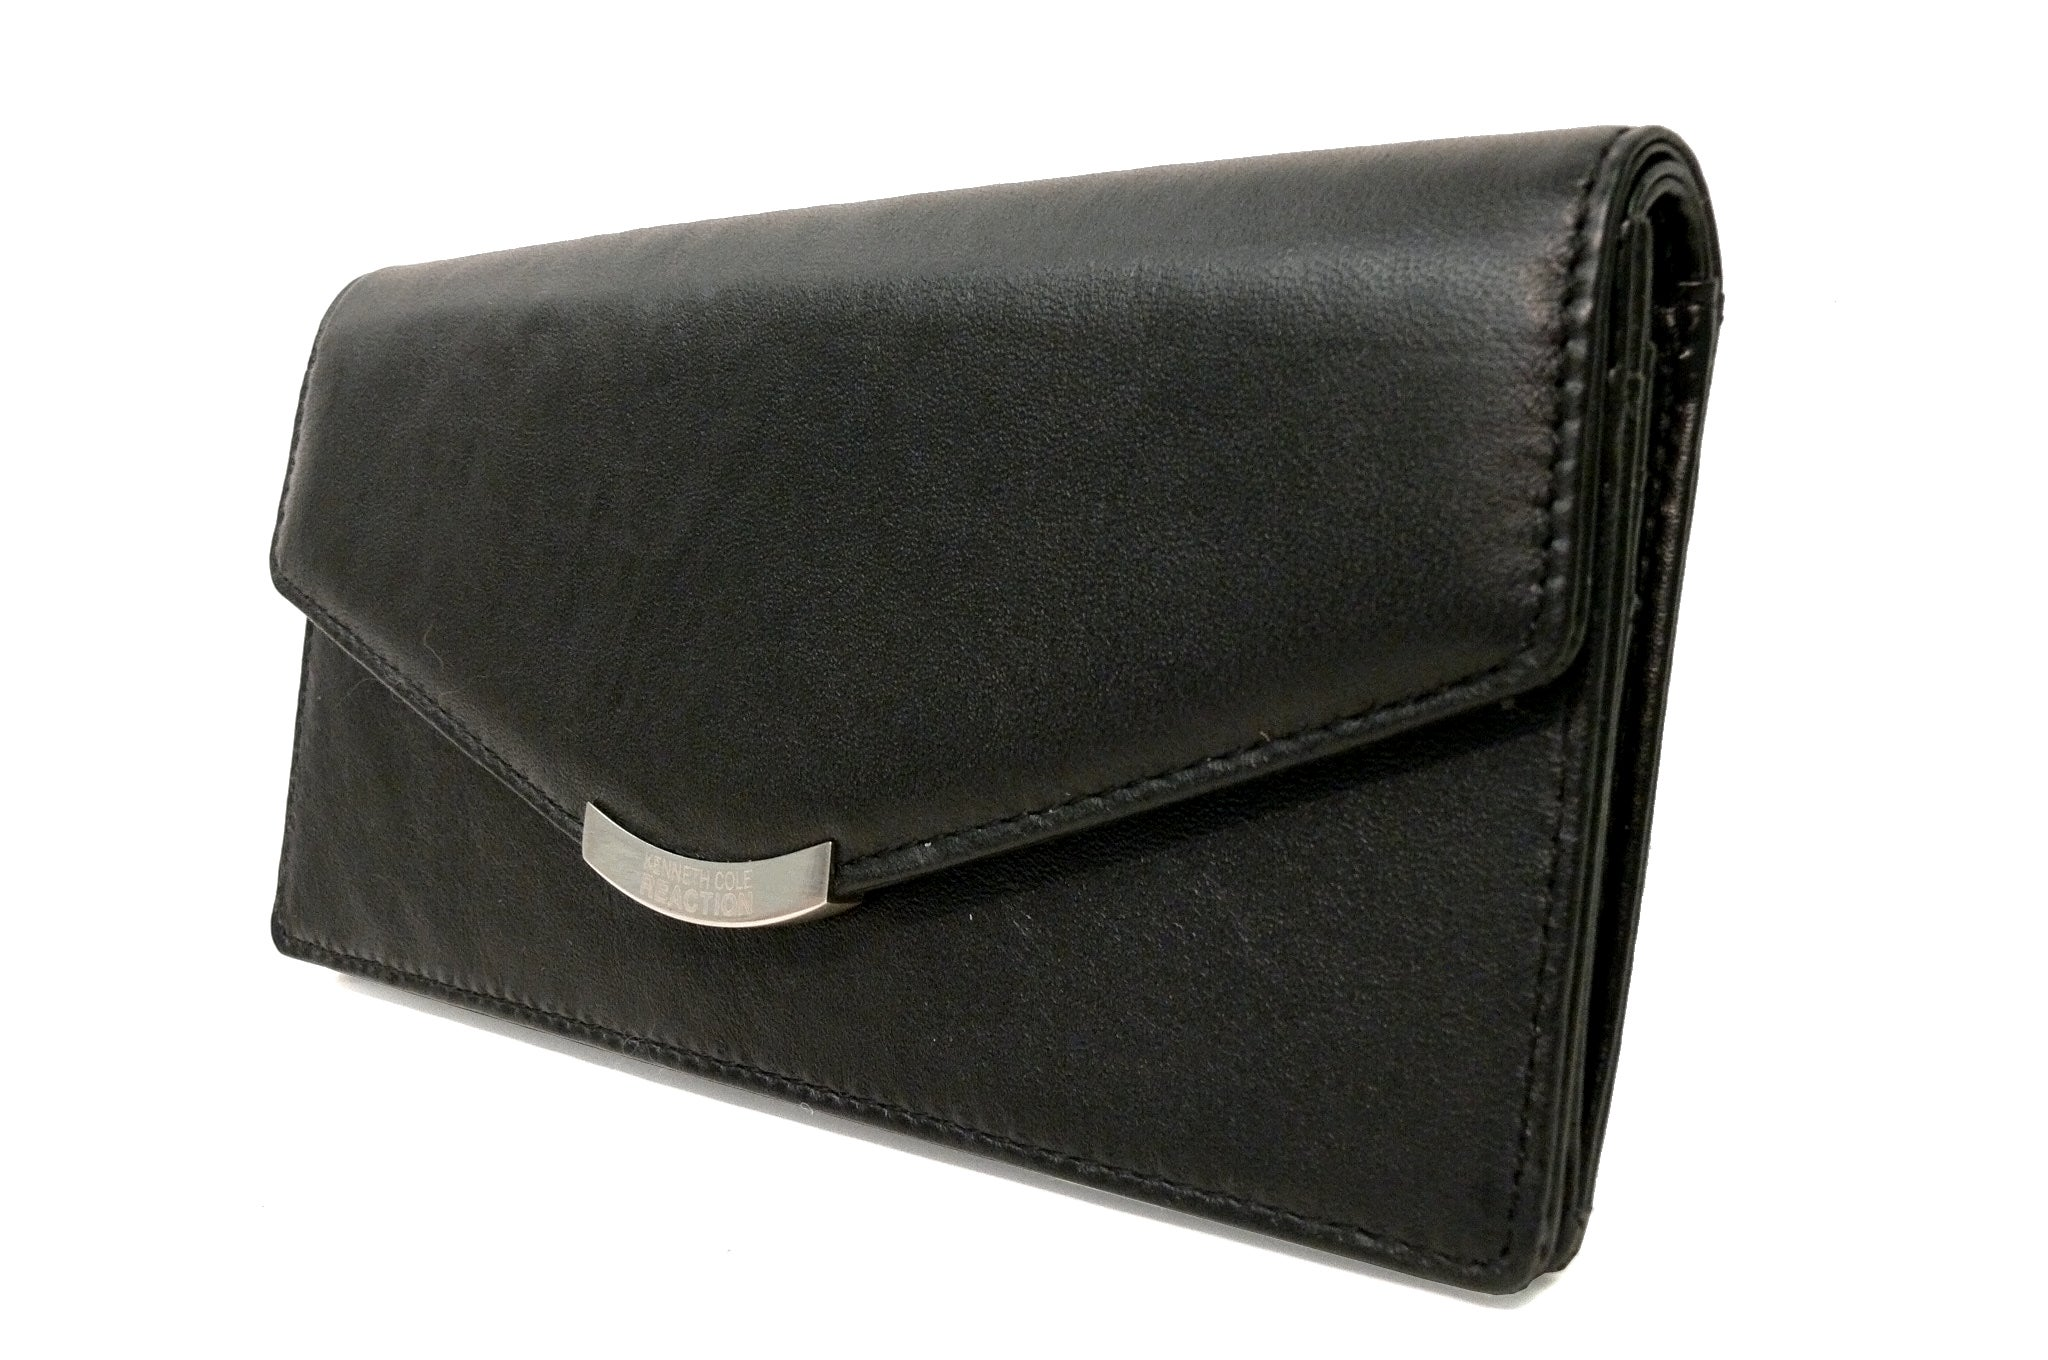 Kenneth Cole Cuff Links Leather Wallet